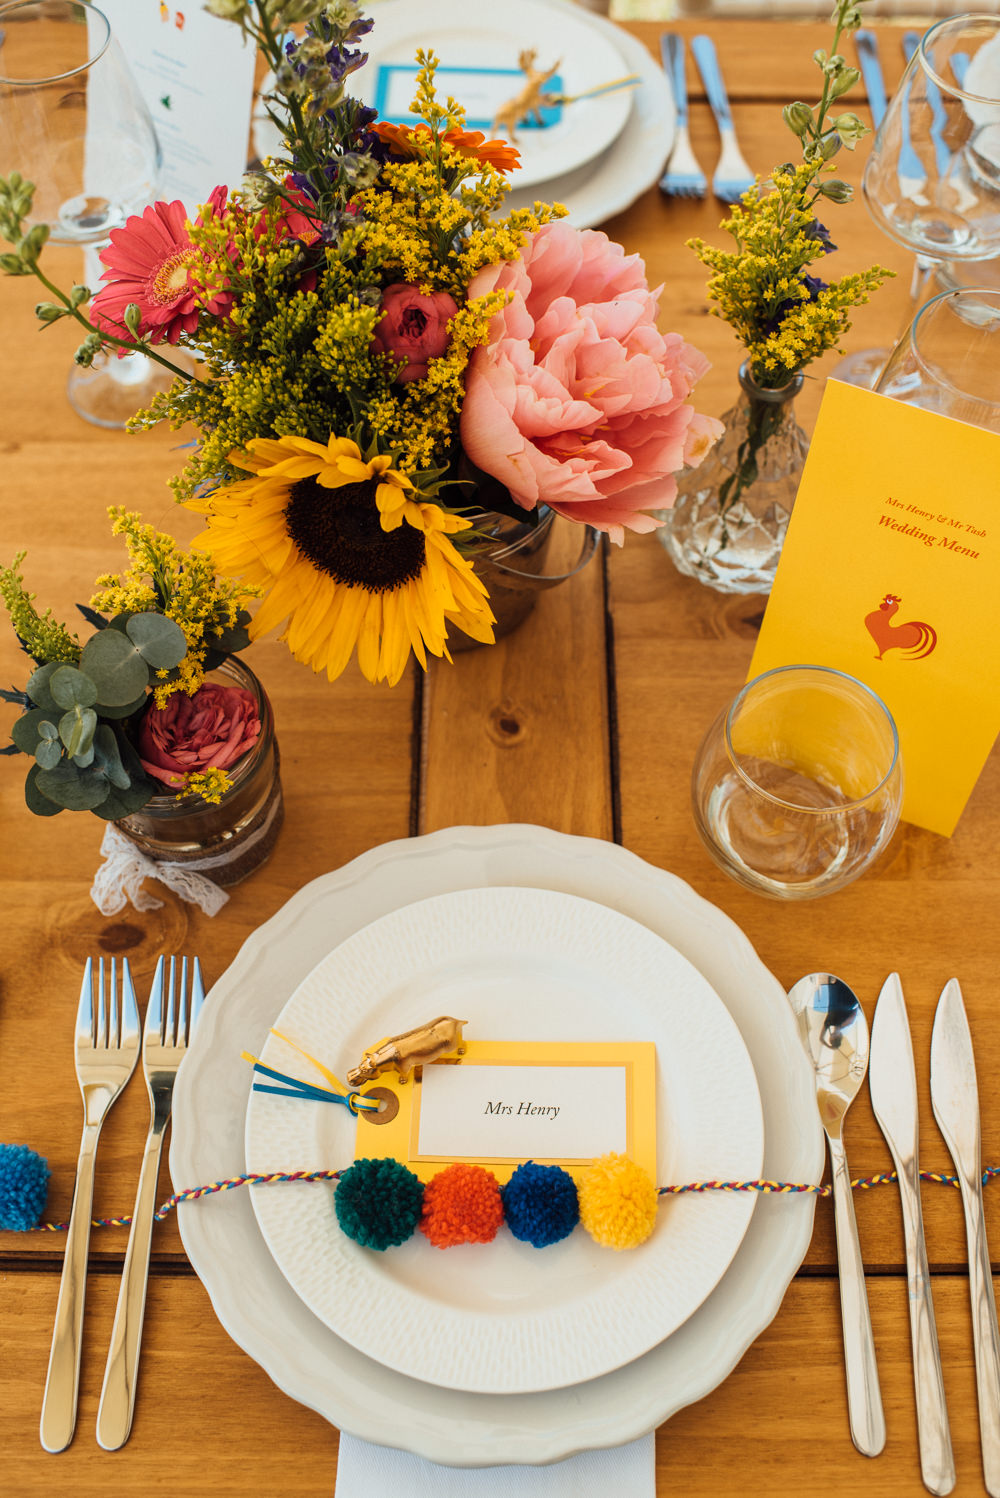 Table Decor Flowers Pom Poms Place Setting Chateau de Lacoste Wedding The Shannons Photography